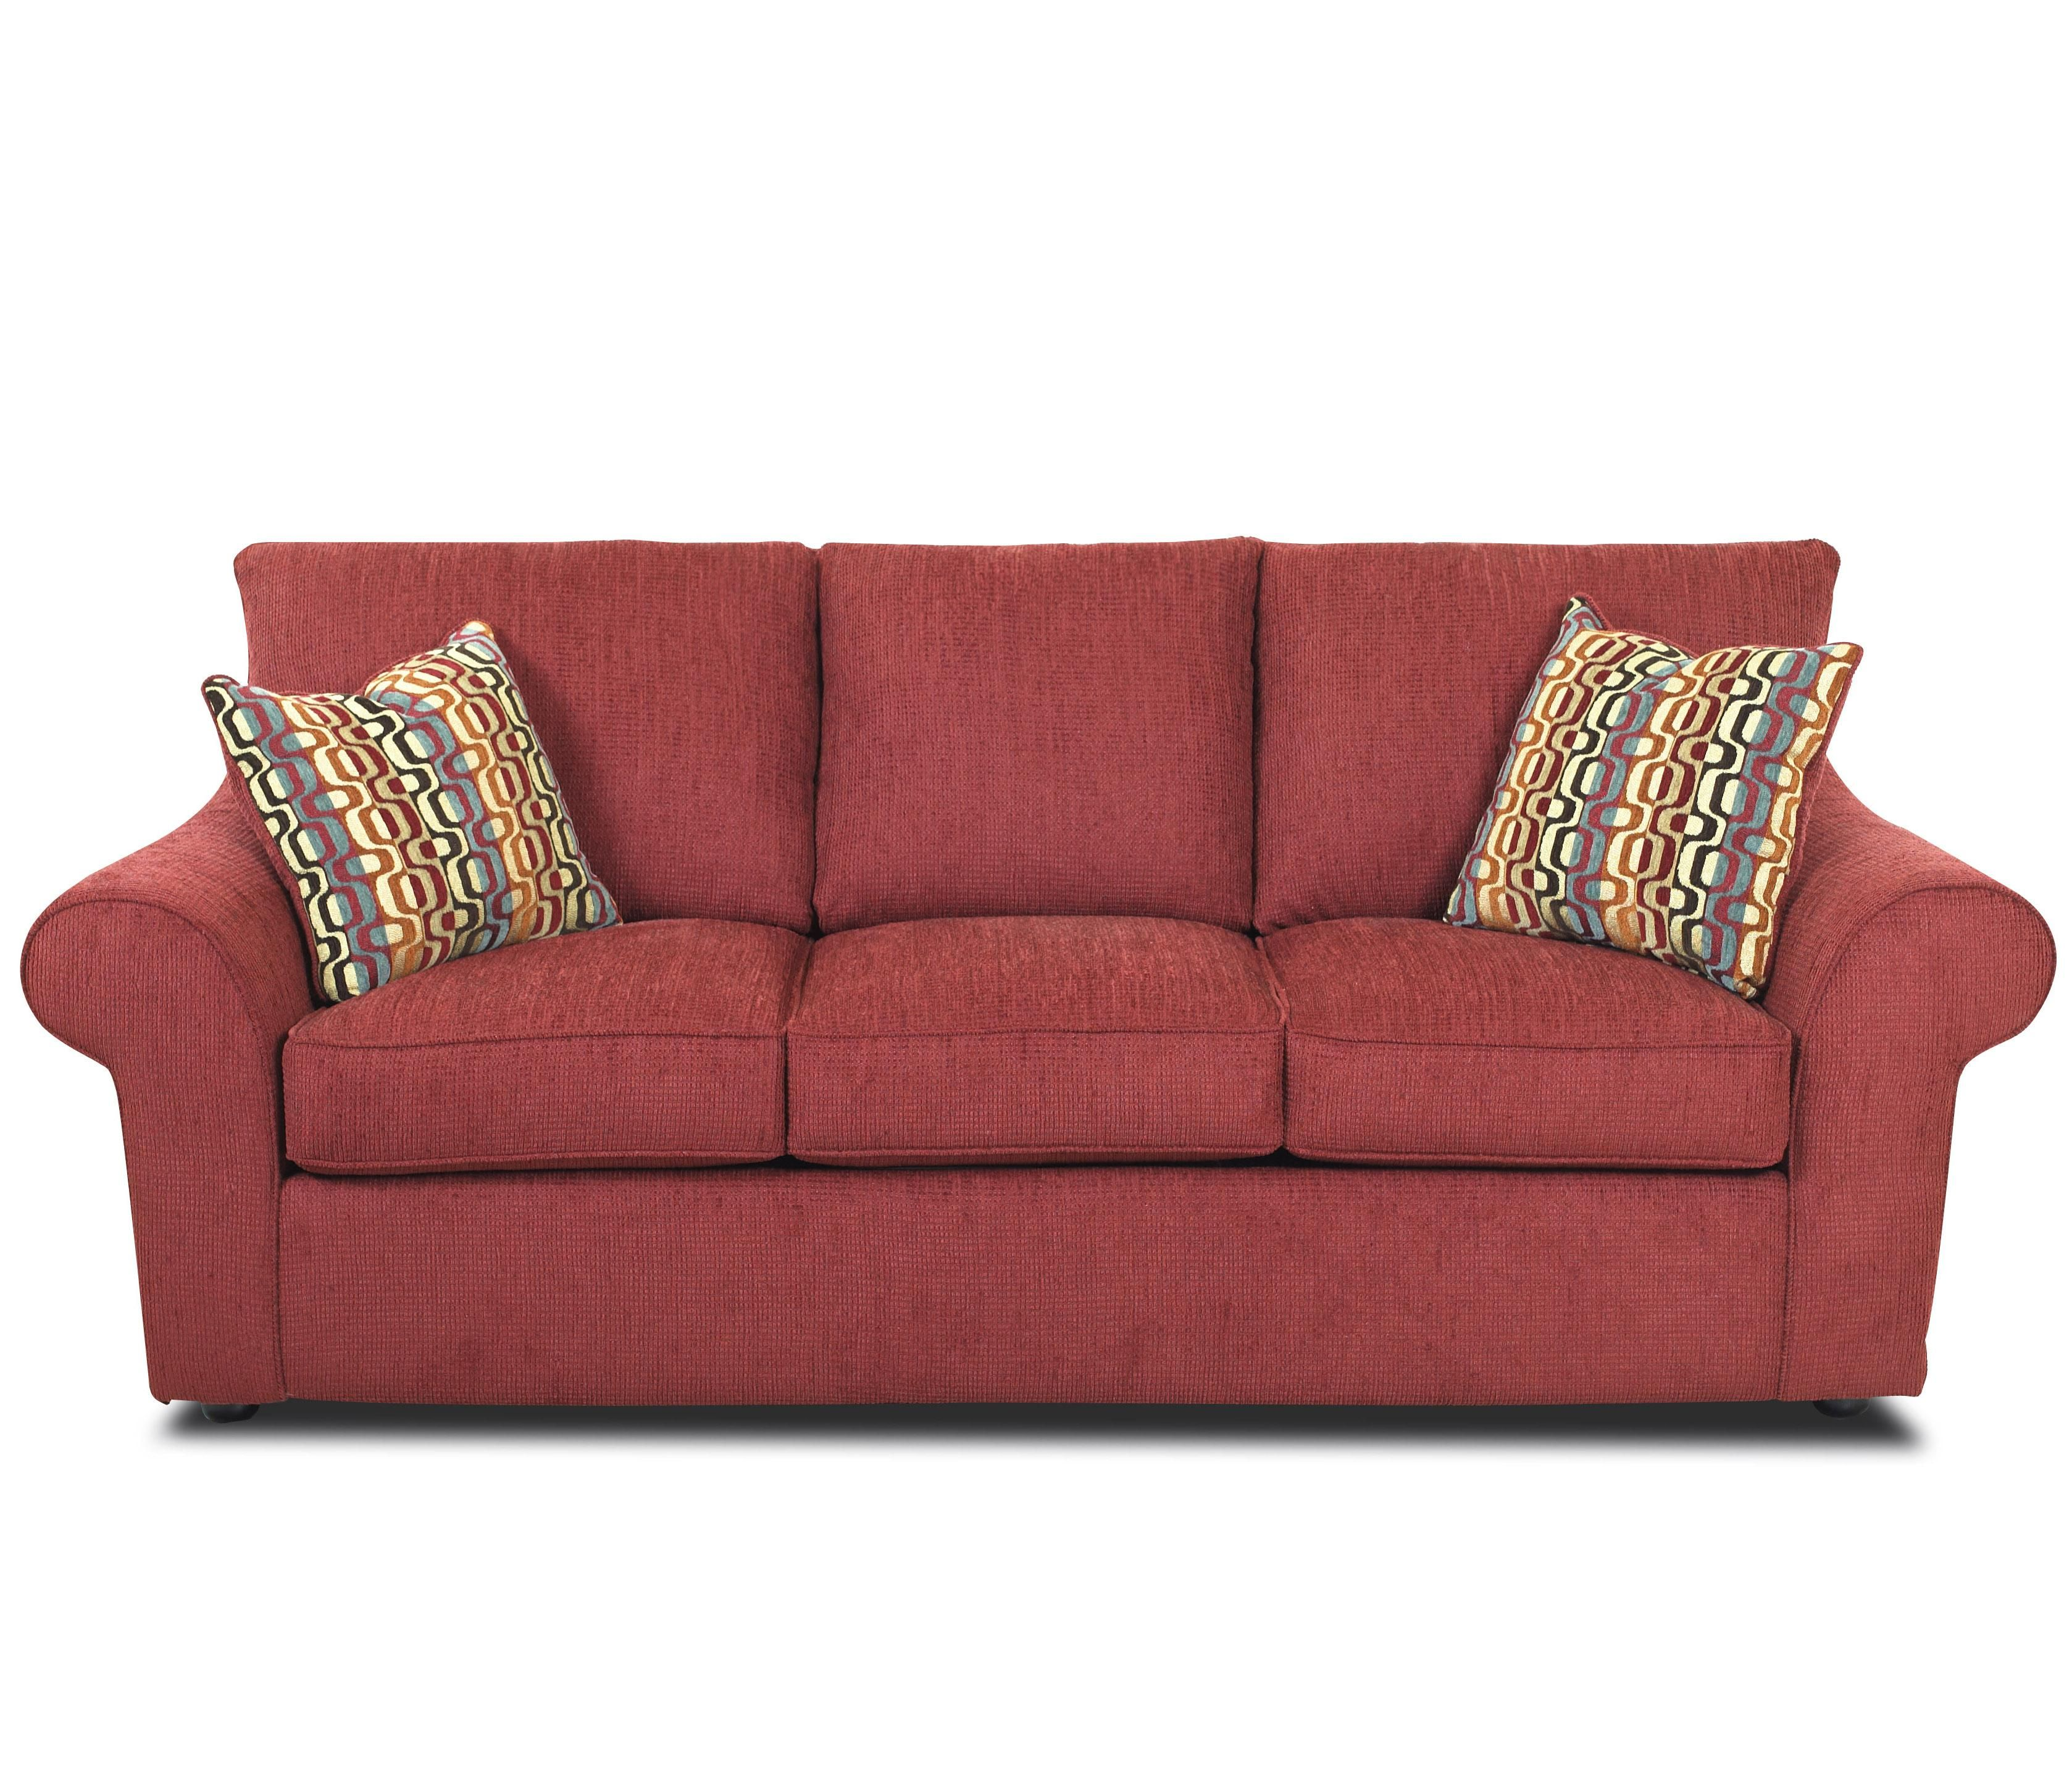 Shop For The Klaussner Folio Stationary Sofa At Godby Home Furnishings    Your Noblesville, Carmel, Avon, Indianapolis, Indiana Furniture Store